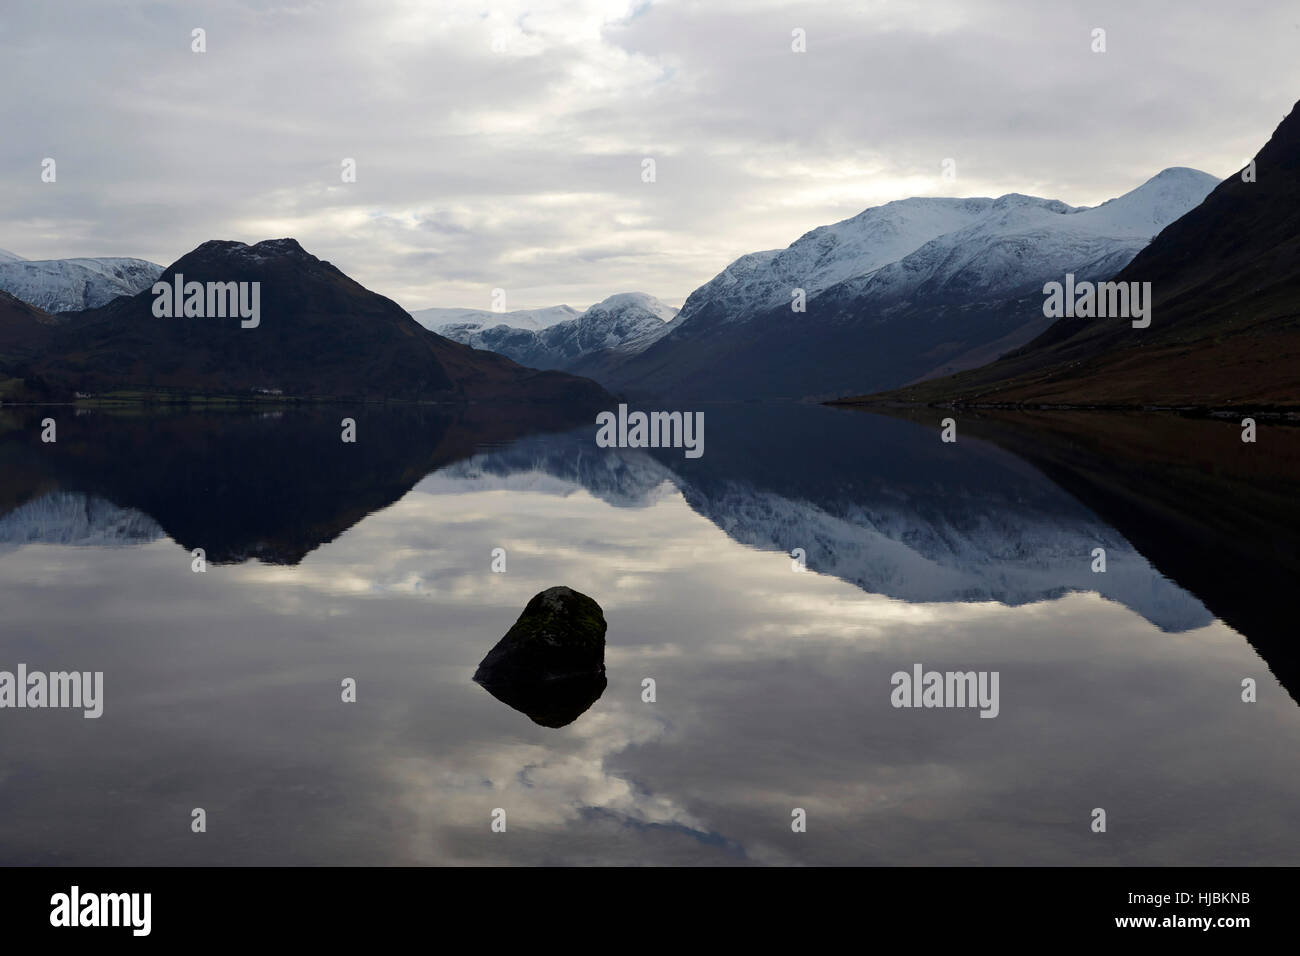 Snow capped mountains and rocks reflected in the calm surface of Crummock Water, Keswick, Cumbria, Lake District, - Stock Image